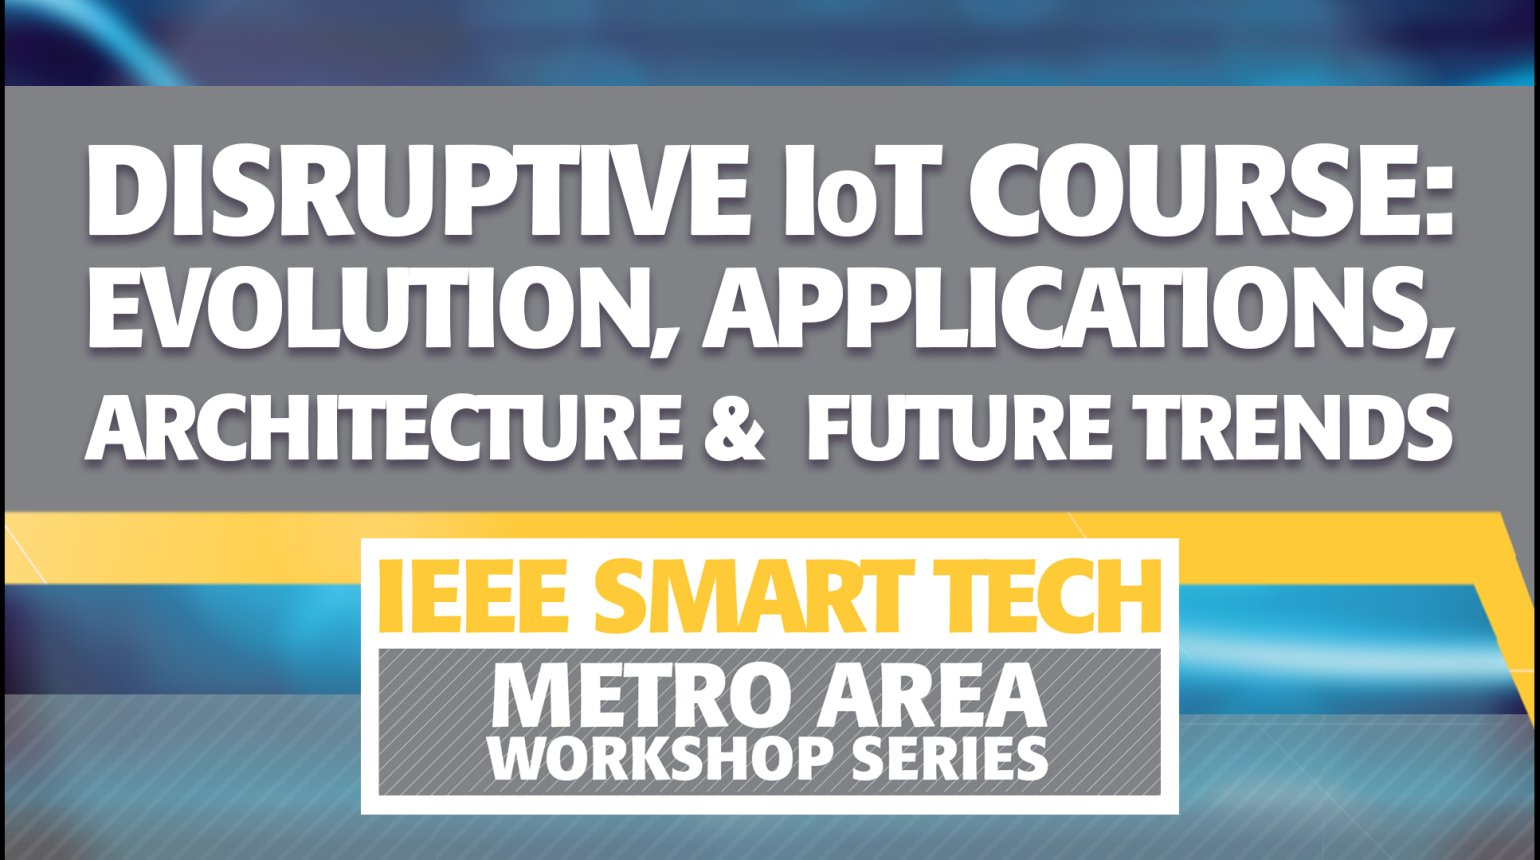 Disruptive Internet of Things Course: Evolution, Applications, Architecture and Future Trends - IEEE Smart Tech